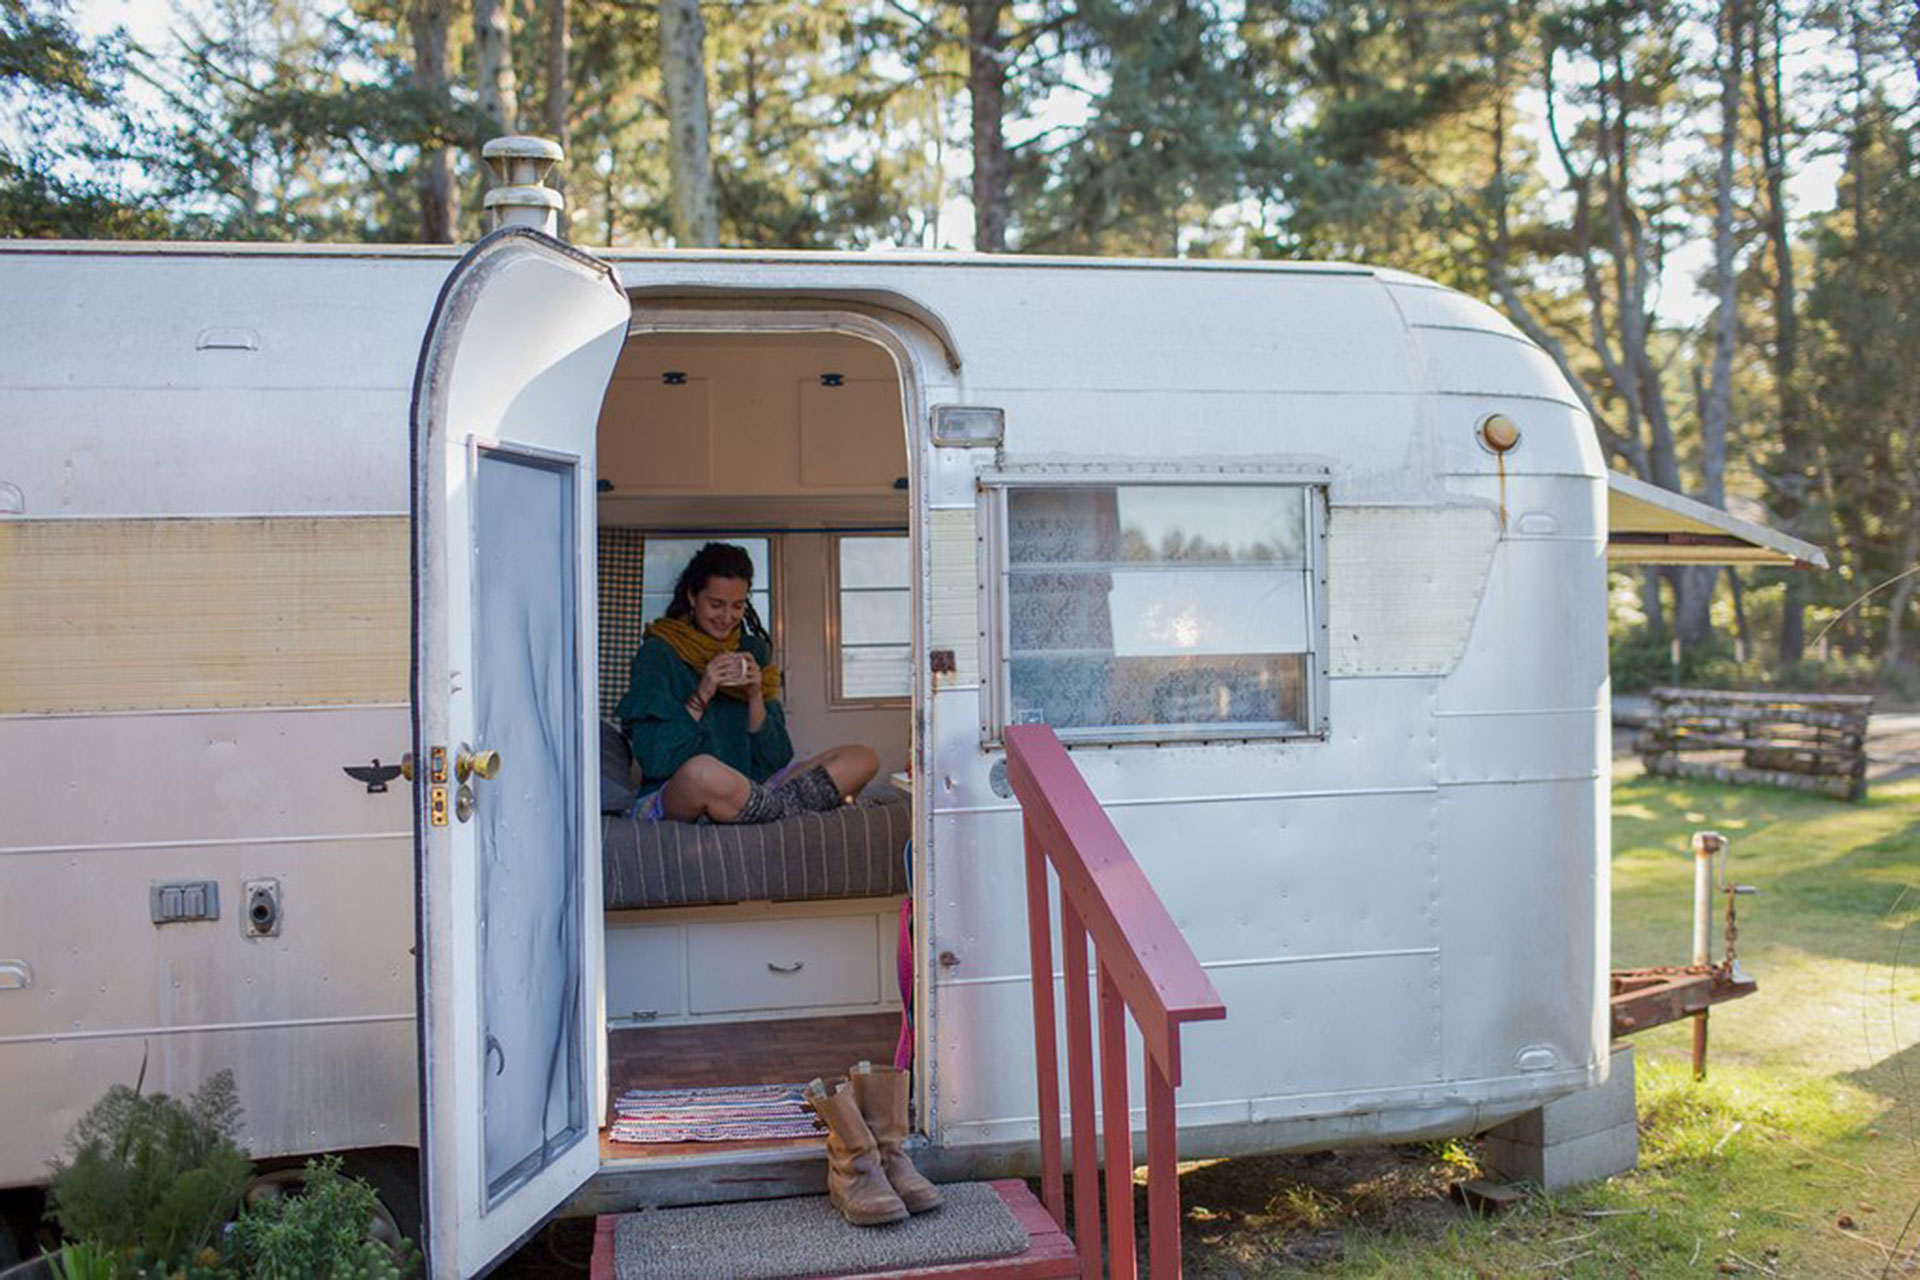 Teenage Girl in Airstream Trailer at Sou'wester Historic Lodge and Vintage Travel Trailer Resort in Seaview, Washington